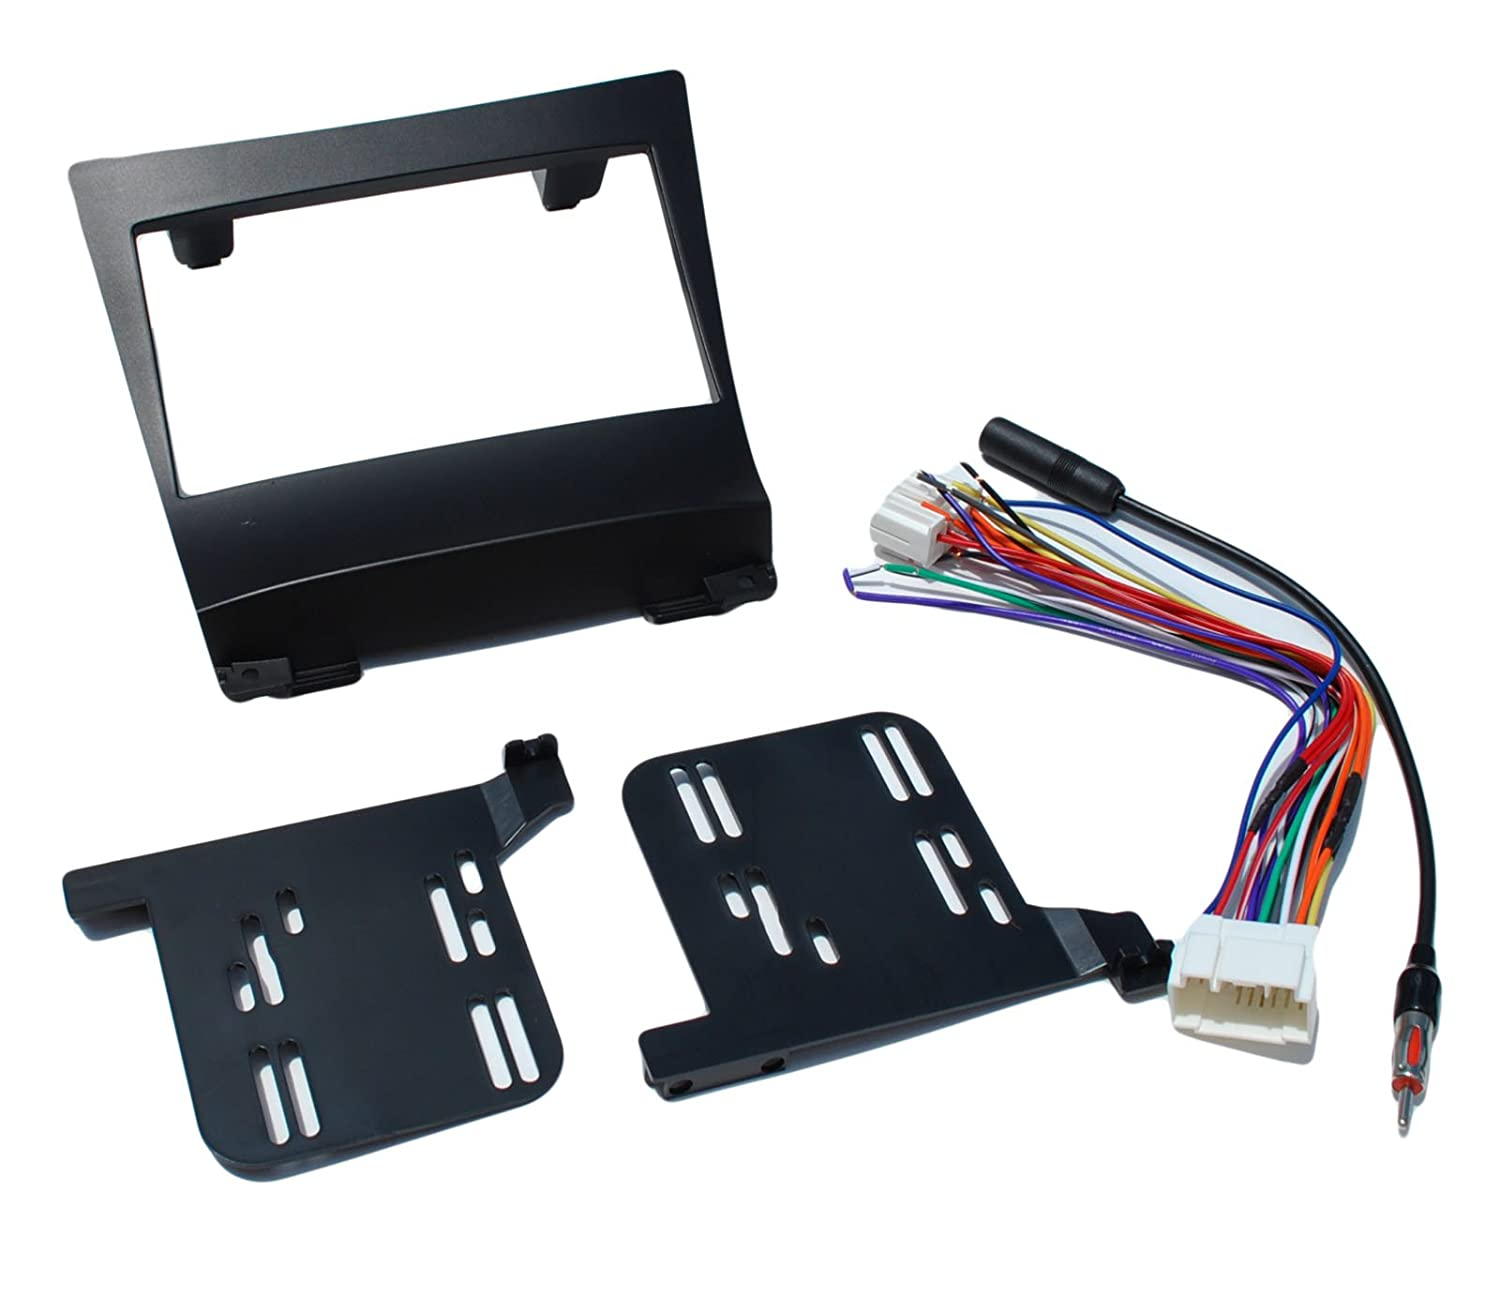 Amazon.com: Aftermarket Radio Install Complete Double Din Dash Kit Fits  Acura TSX 2004-2008: Cell Phones & Accessories